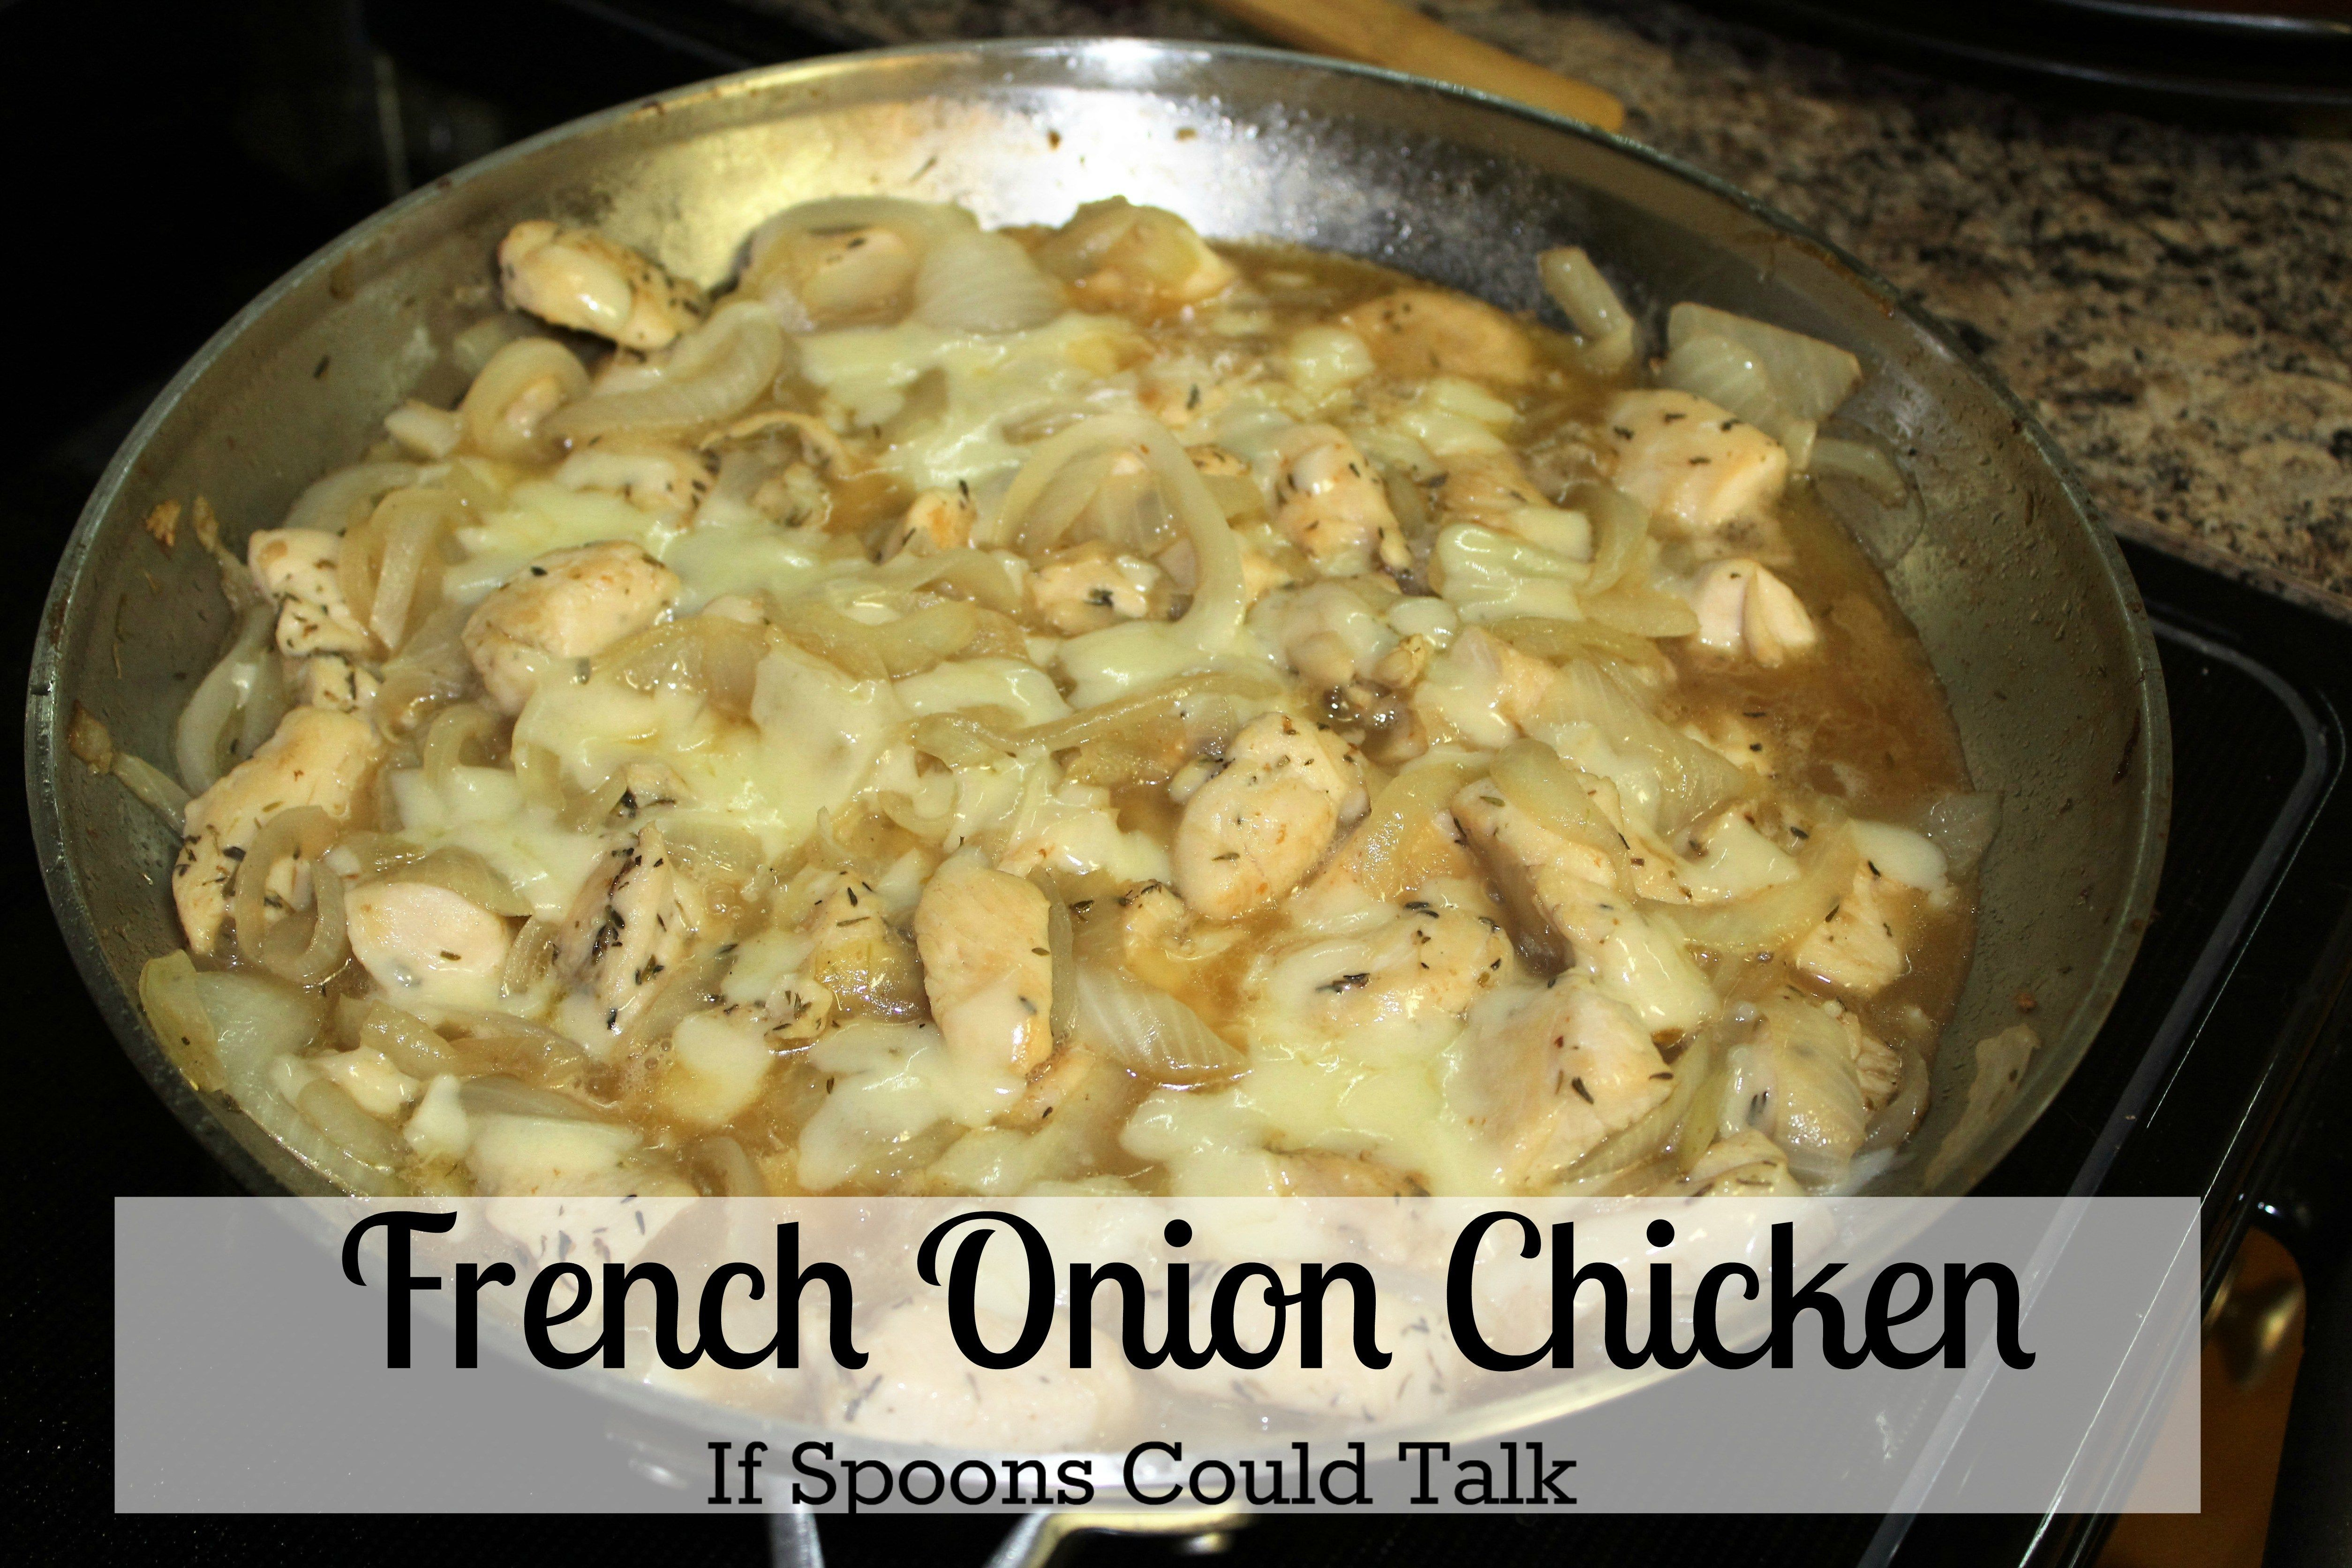 French onion soup in chicken form easy weeknight meal top food all the goodness of a bowl of french onion soup in an easy chicken skillet dish find this pin and more on top food bloggers on pinterest forumfinder Image collections